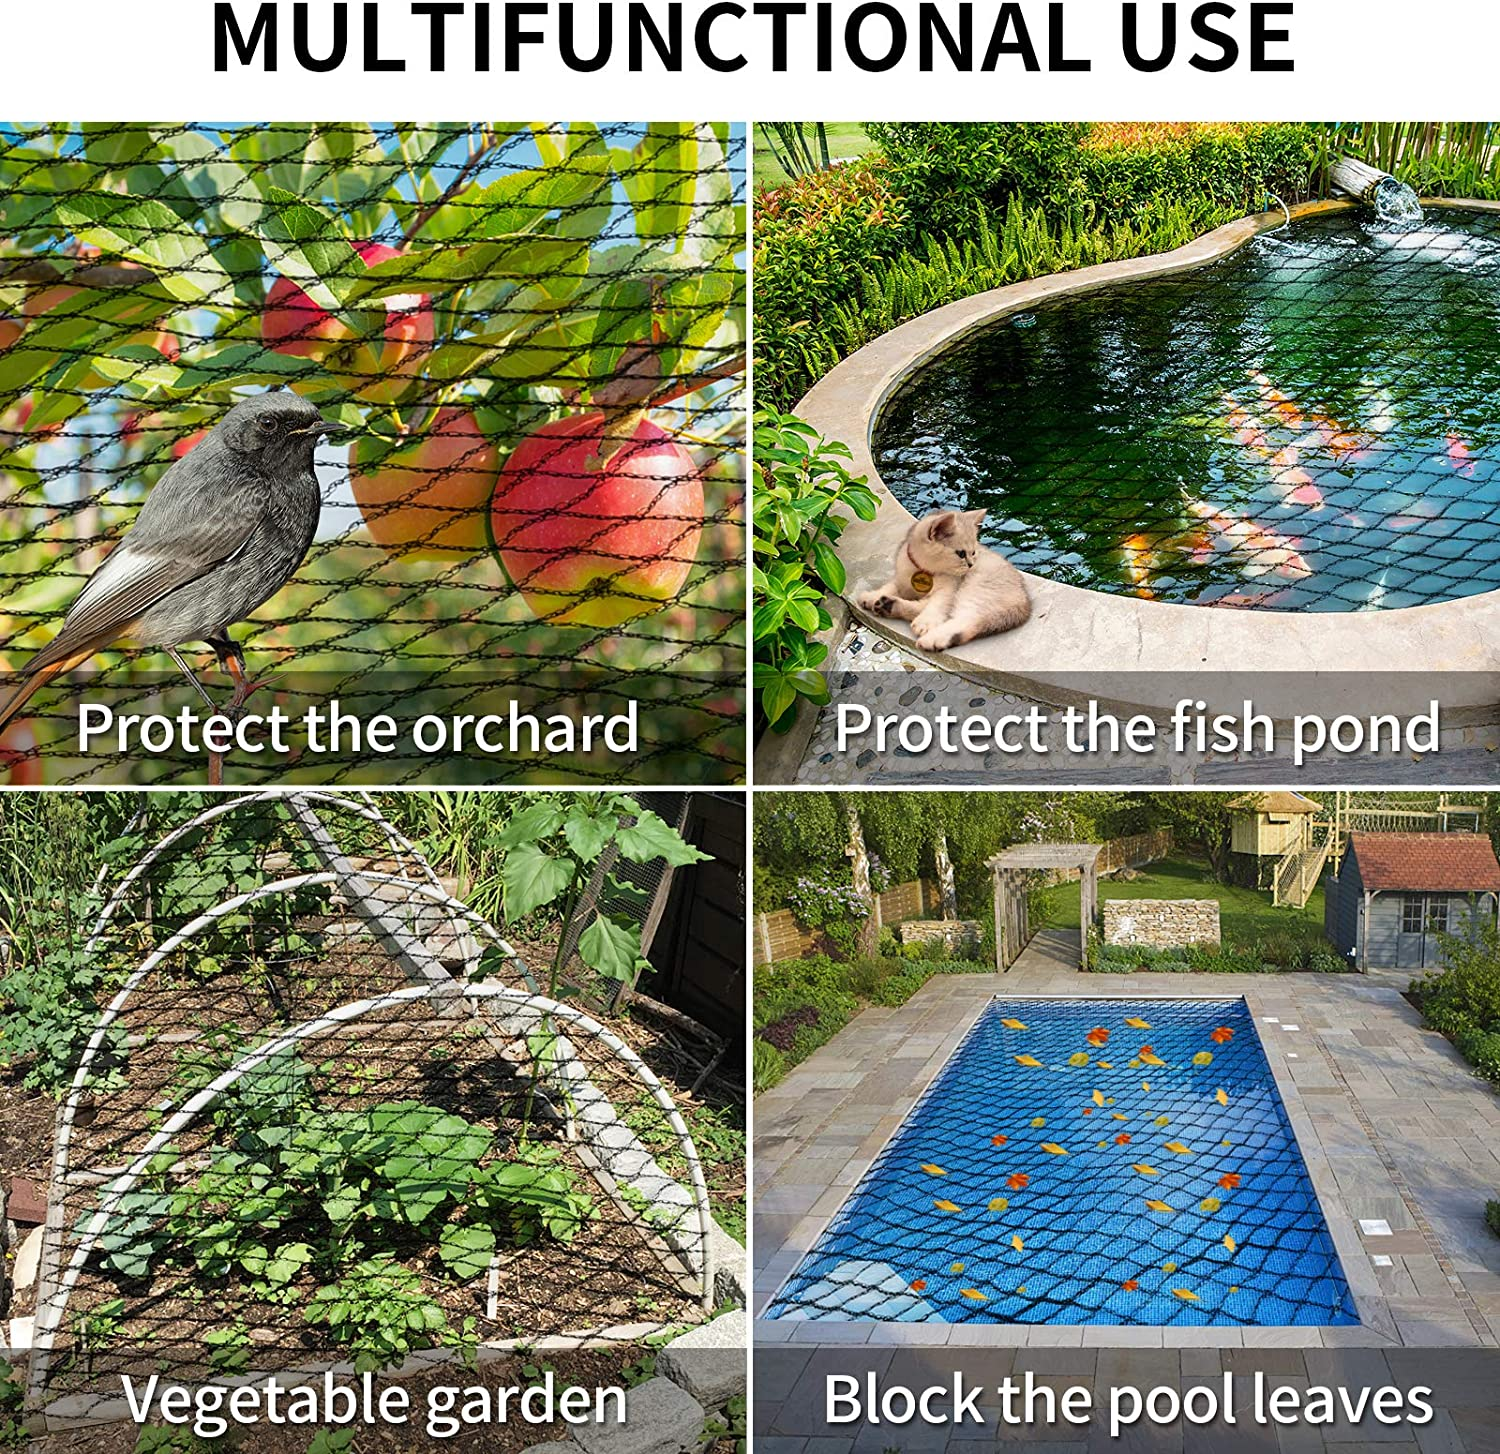 SRJTEK Pond Netting Kit 15 x 20 Feet Protect Koi Fish from Birds Cats Predators UV Protection Heavy Duty Stretch Pond /& Pool Netting Protective Floating Net with Stakes